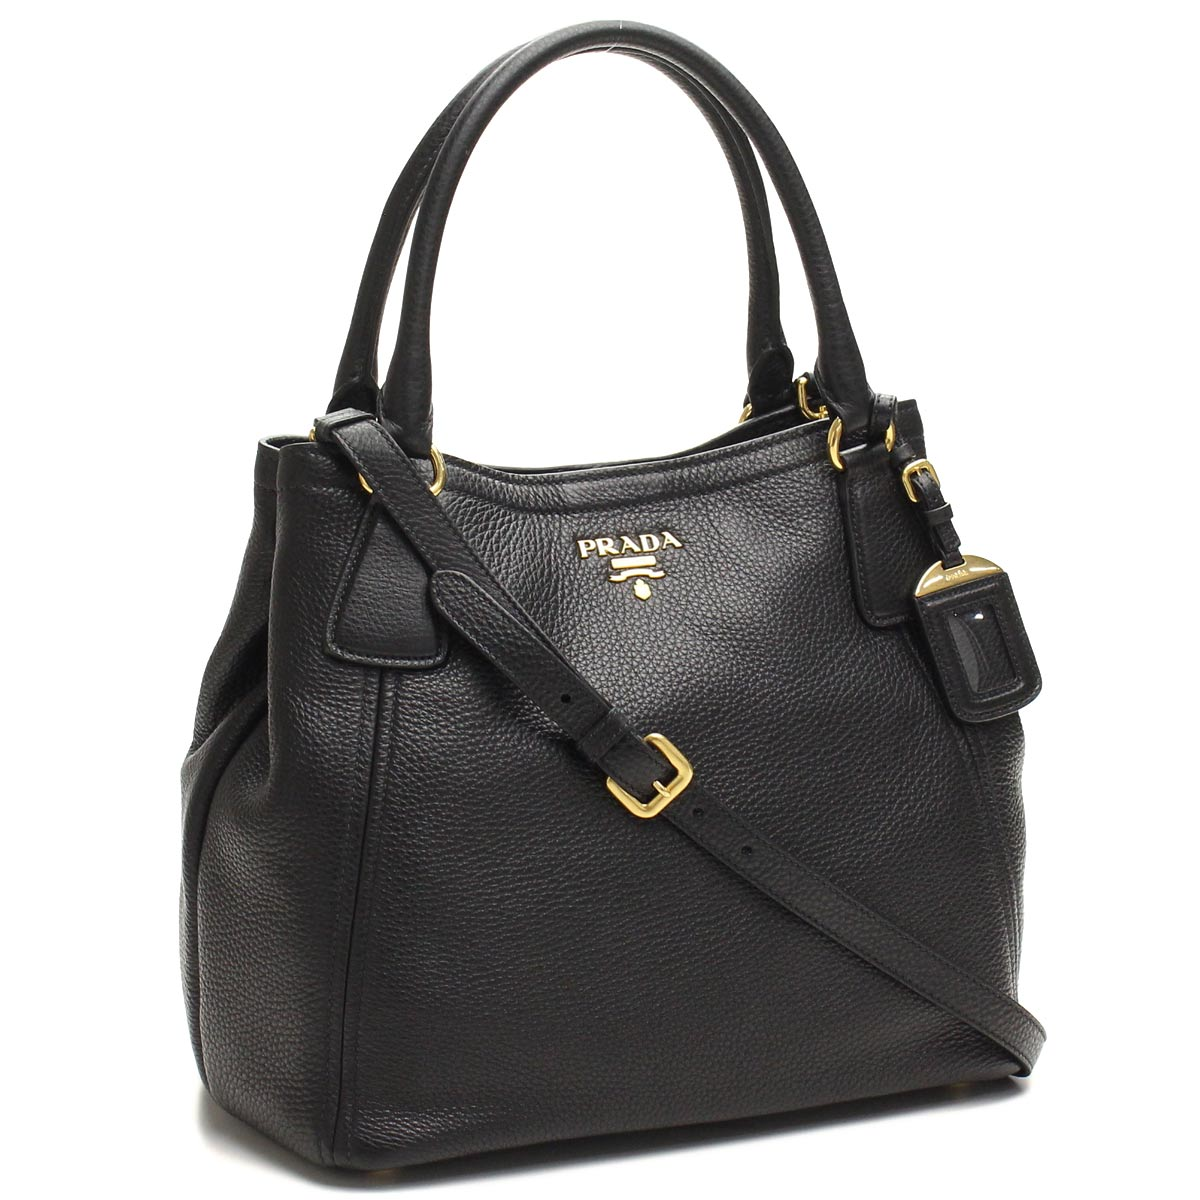 ef8f403598bb Bighit The total brand wholesale: Prada outlet PRADA (OUTLET) tote bag  BN2534-O-UWL-F0002 NERO black( taxfree/send by EMS/authentic/A brand new  item ) ...